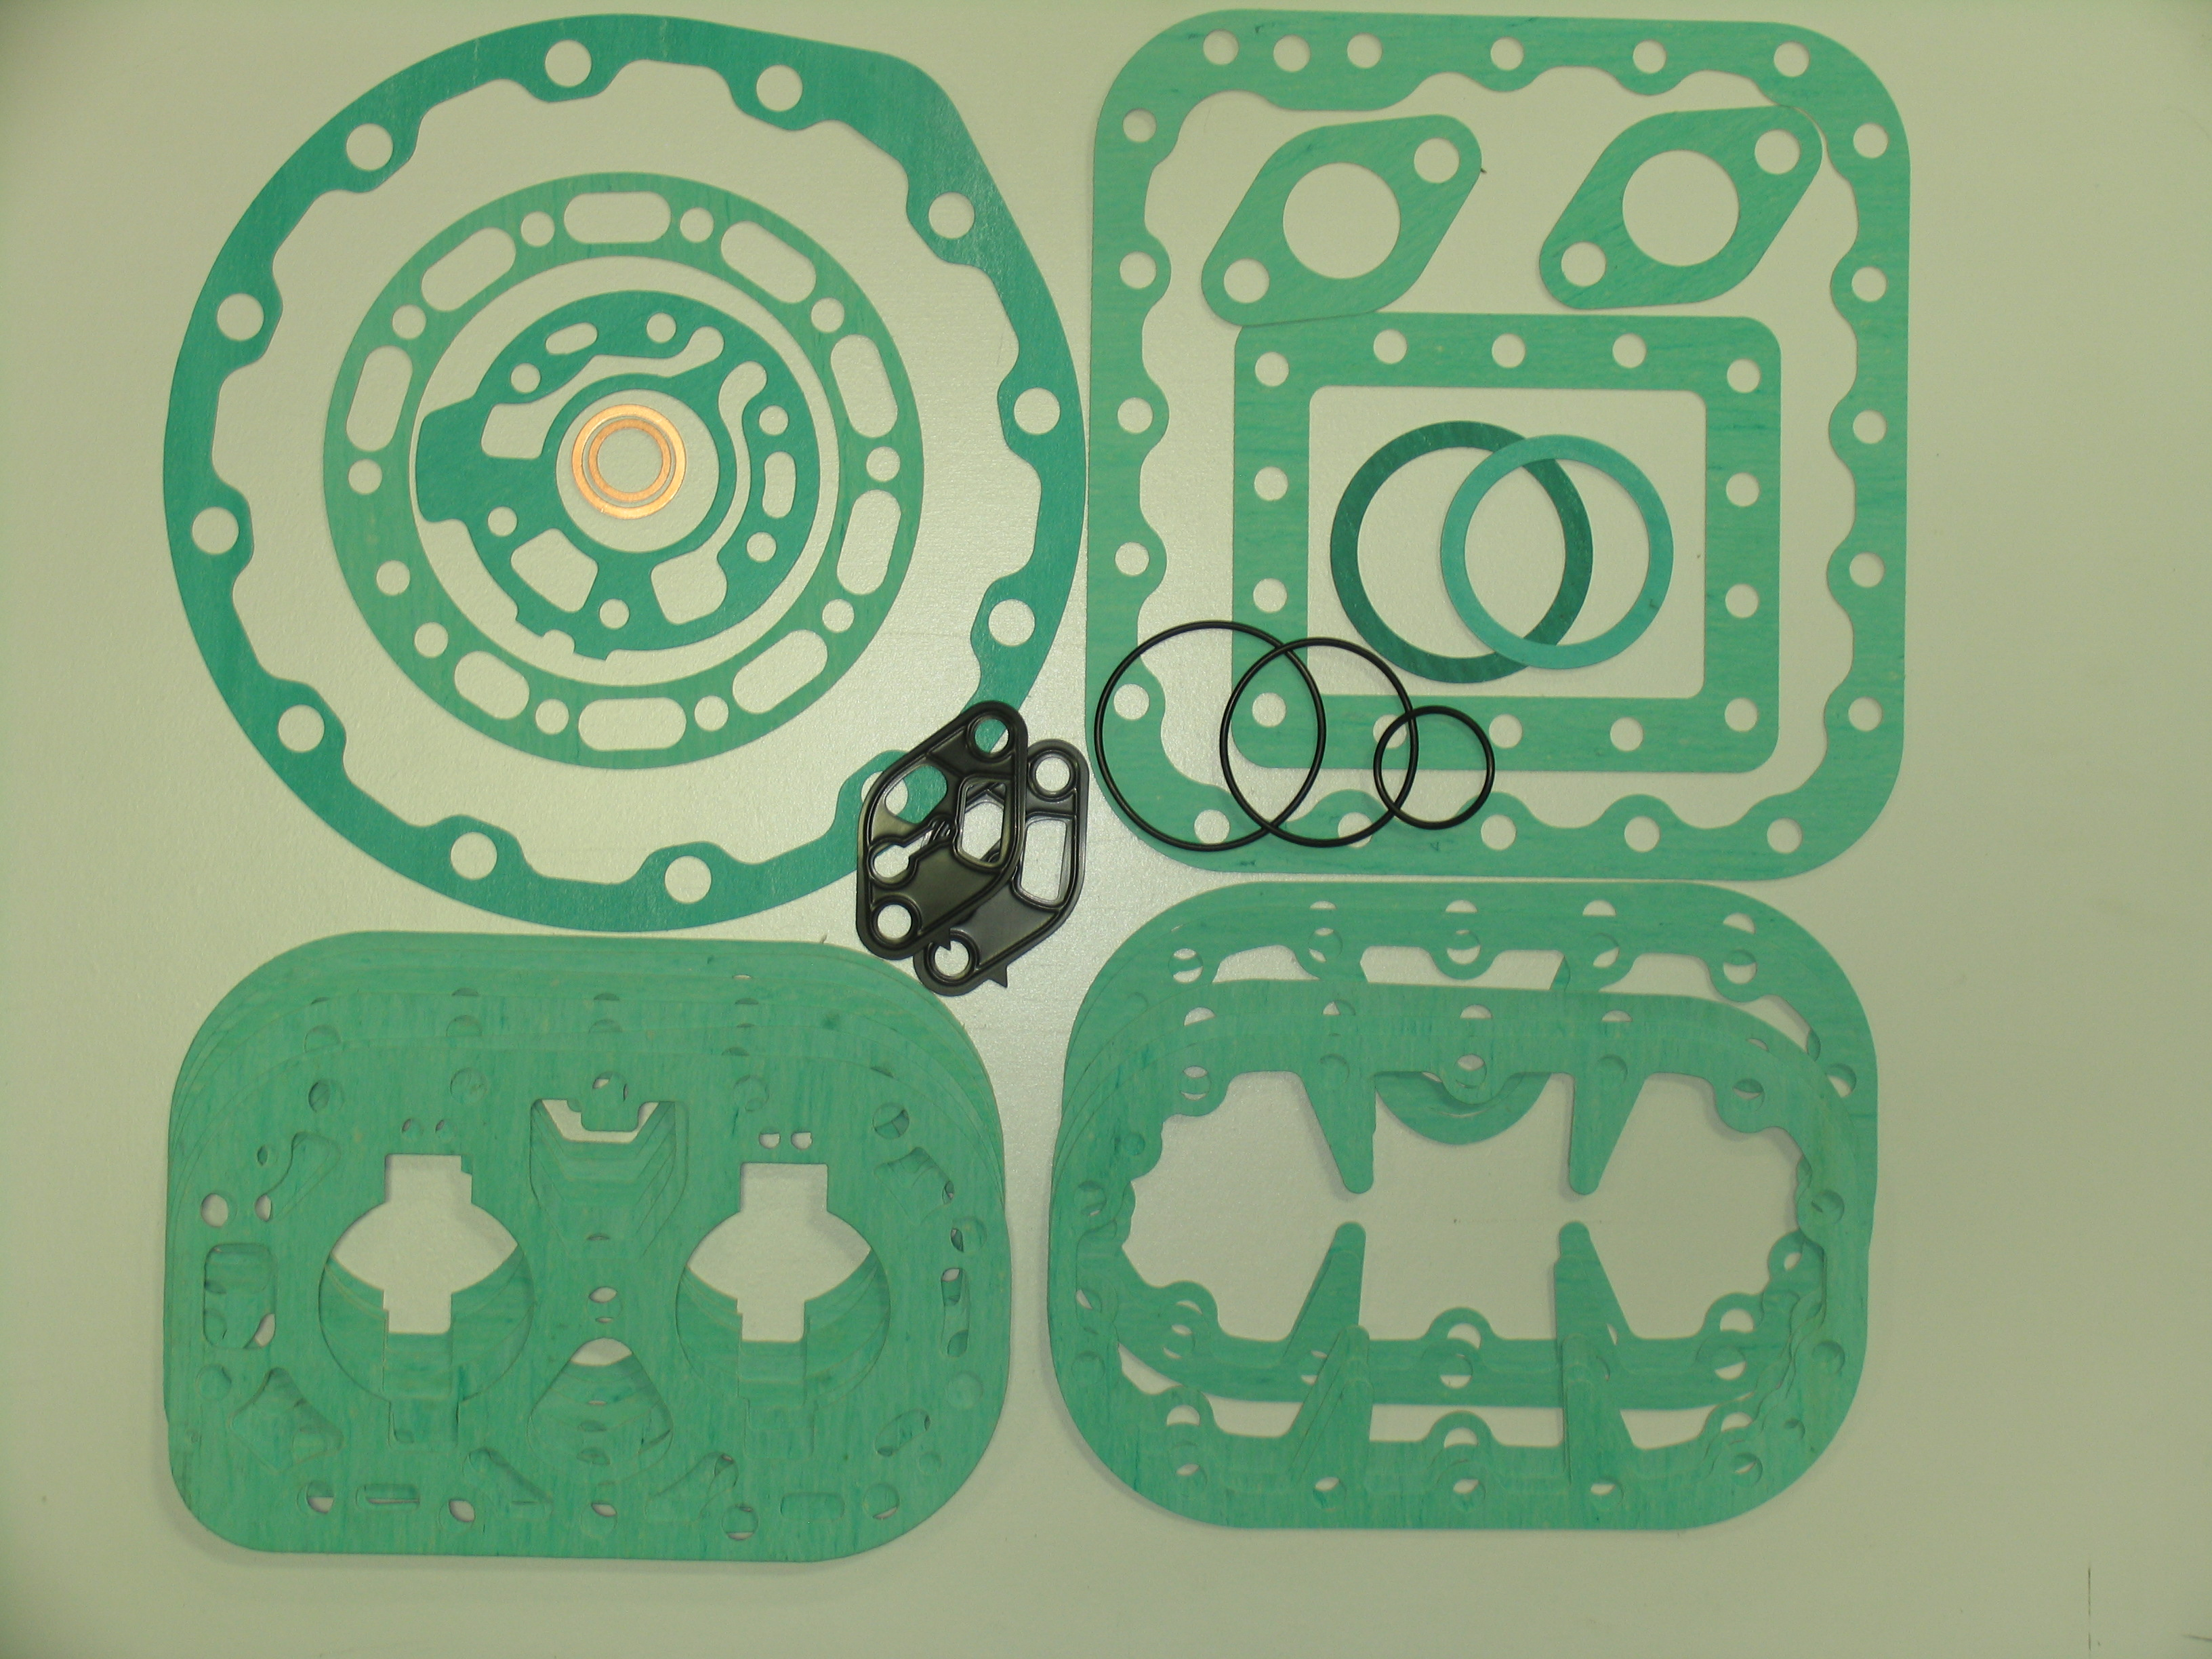 KIT-5318A-2 Gasket Kit; 6D Delta